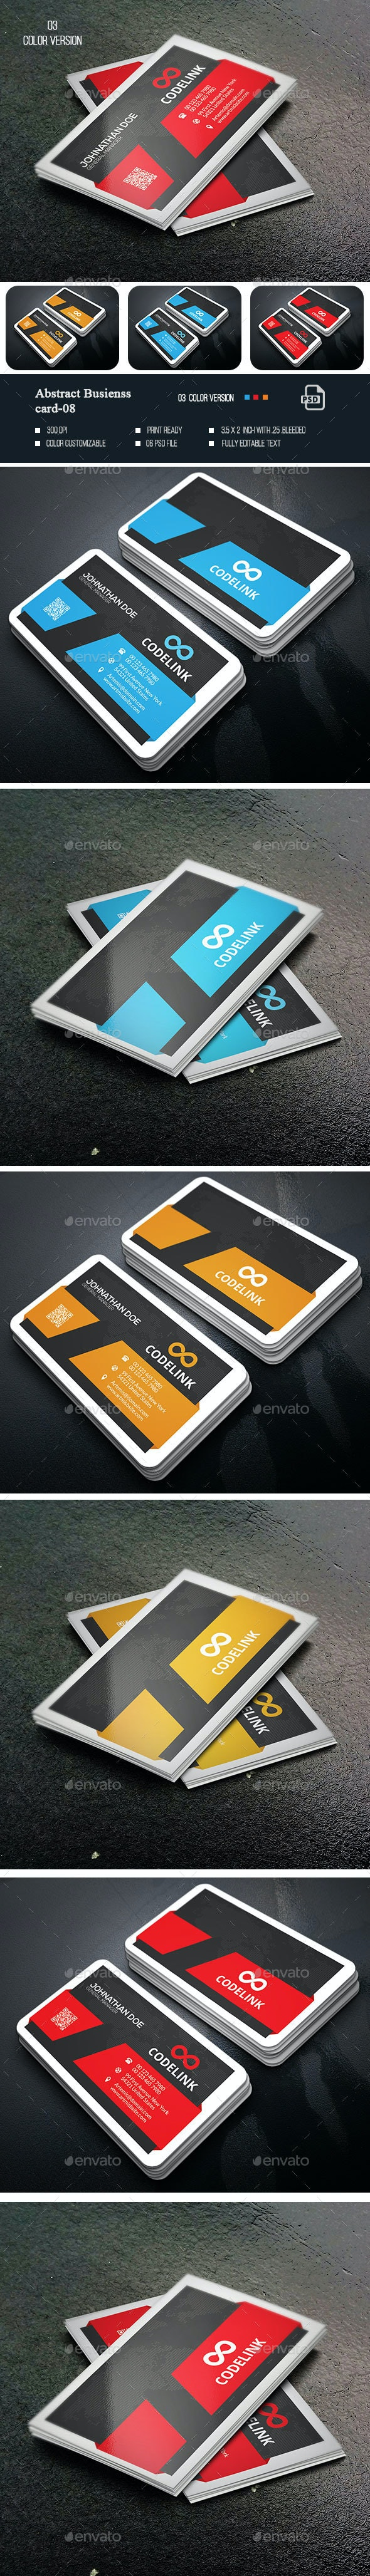 Abstract Business Card-08 - Business Cards Print Templates